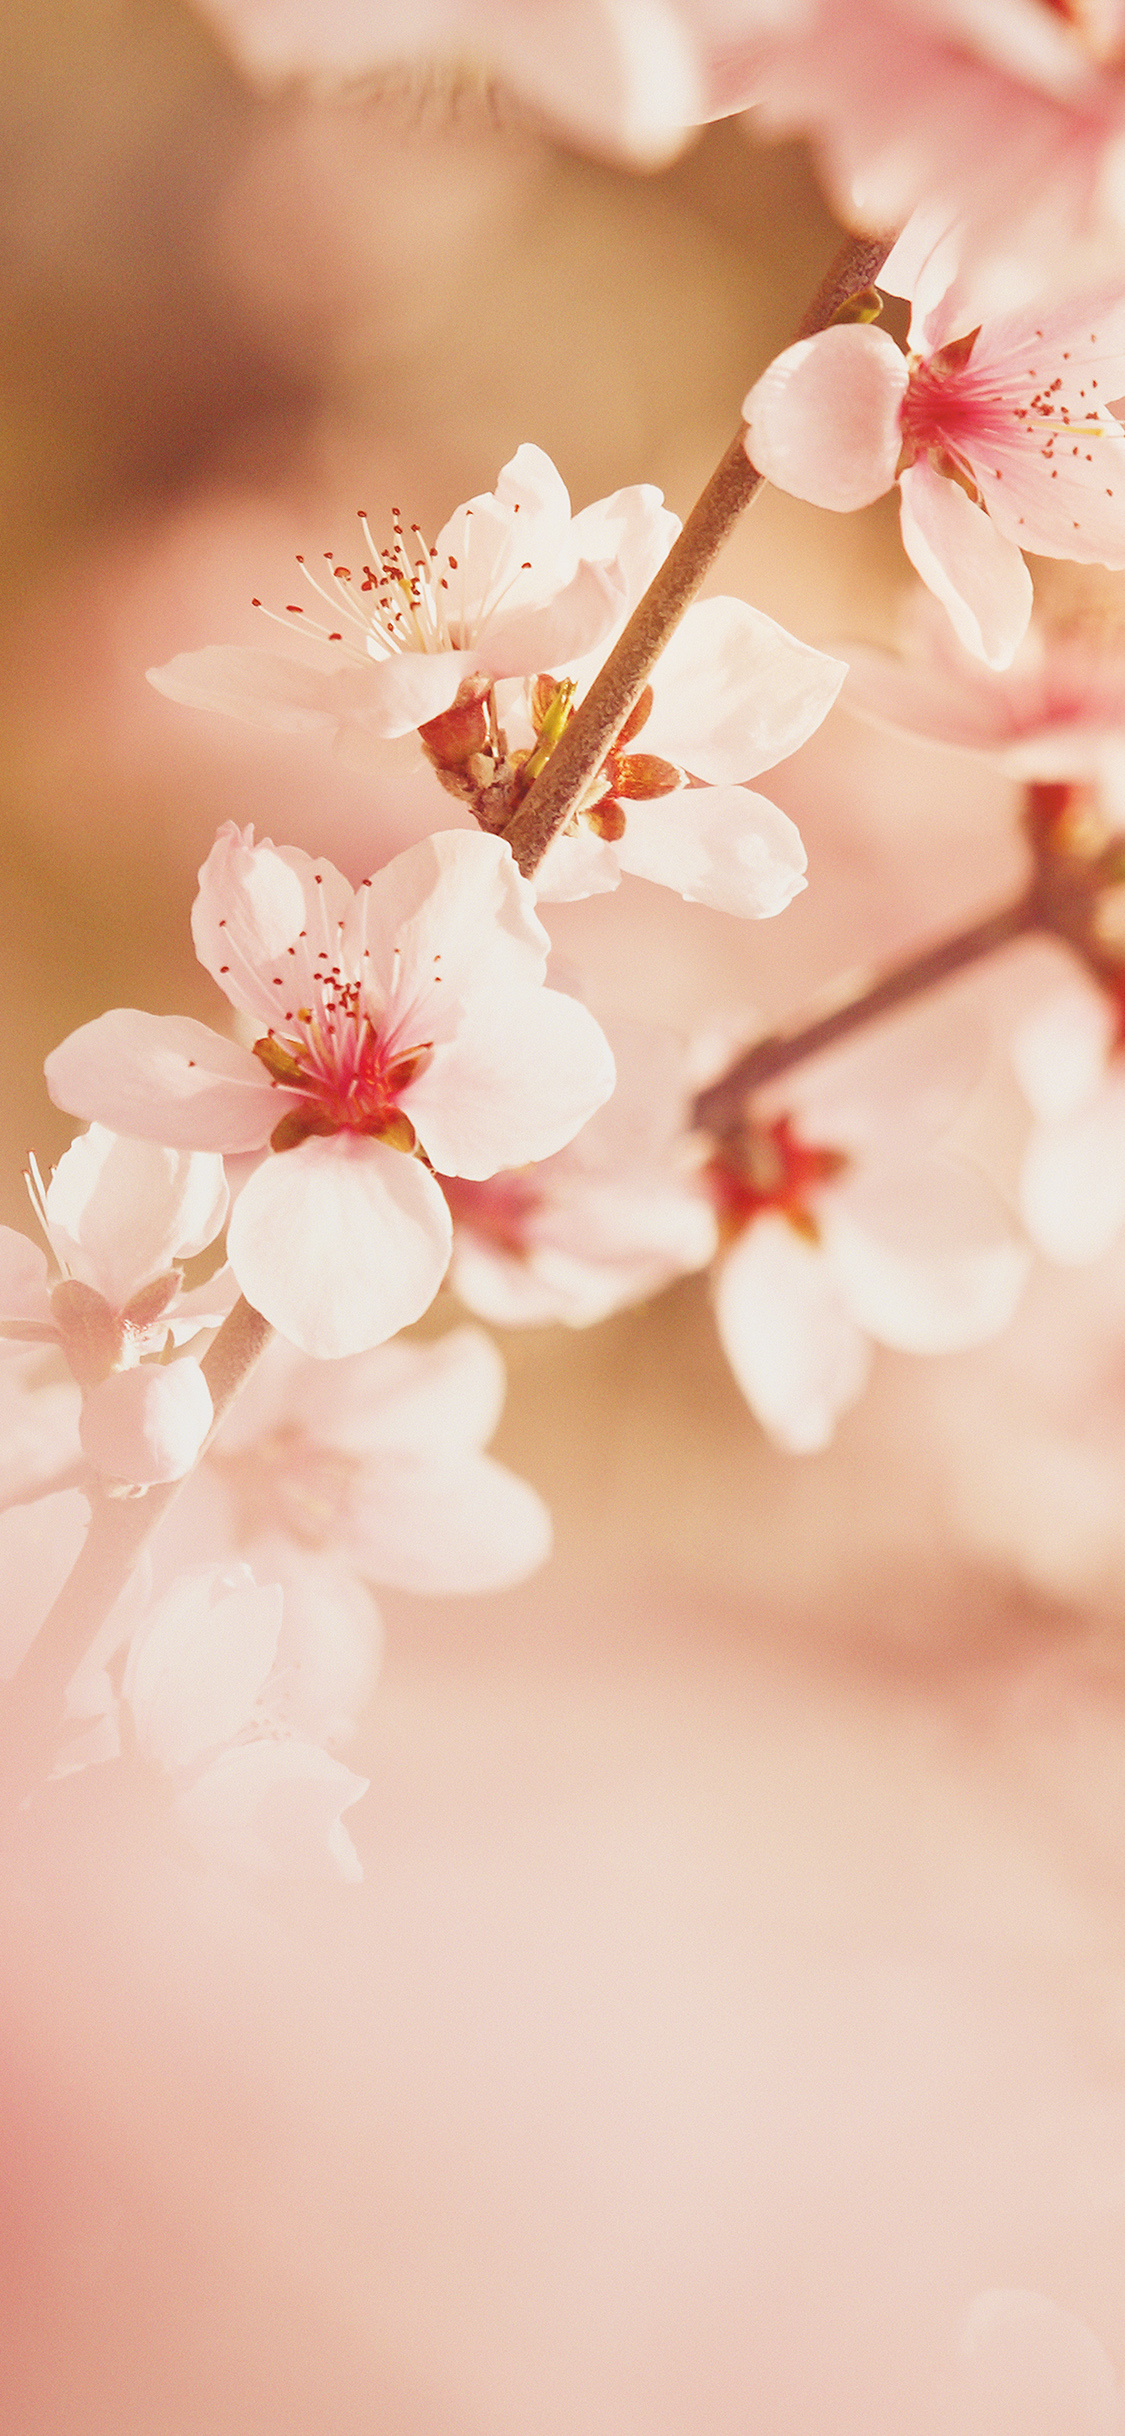 iPhoneXpapers.com-Apple-iPhone-wallpaper-mp02-spring-flower-sullysully-cherry-blossom-nature